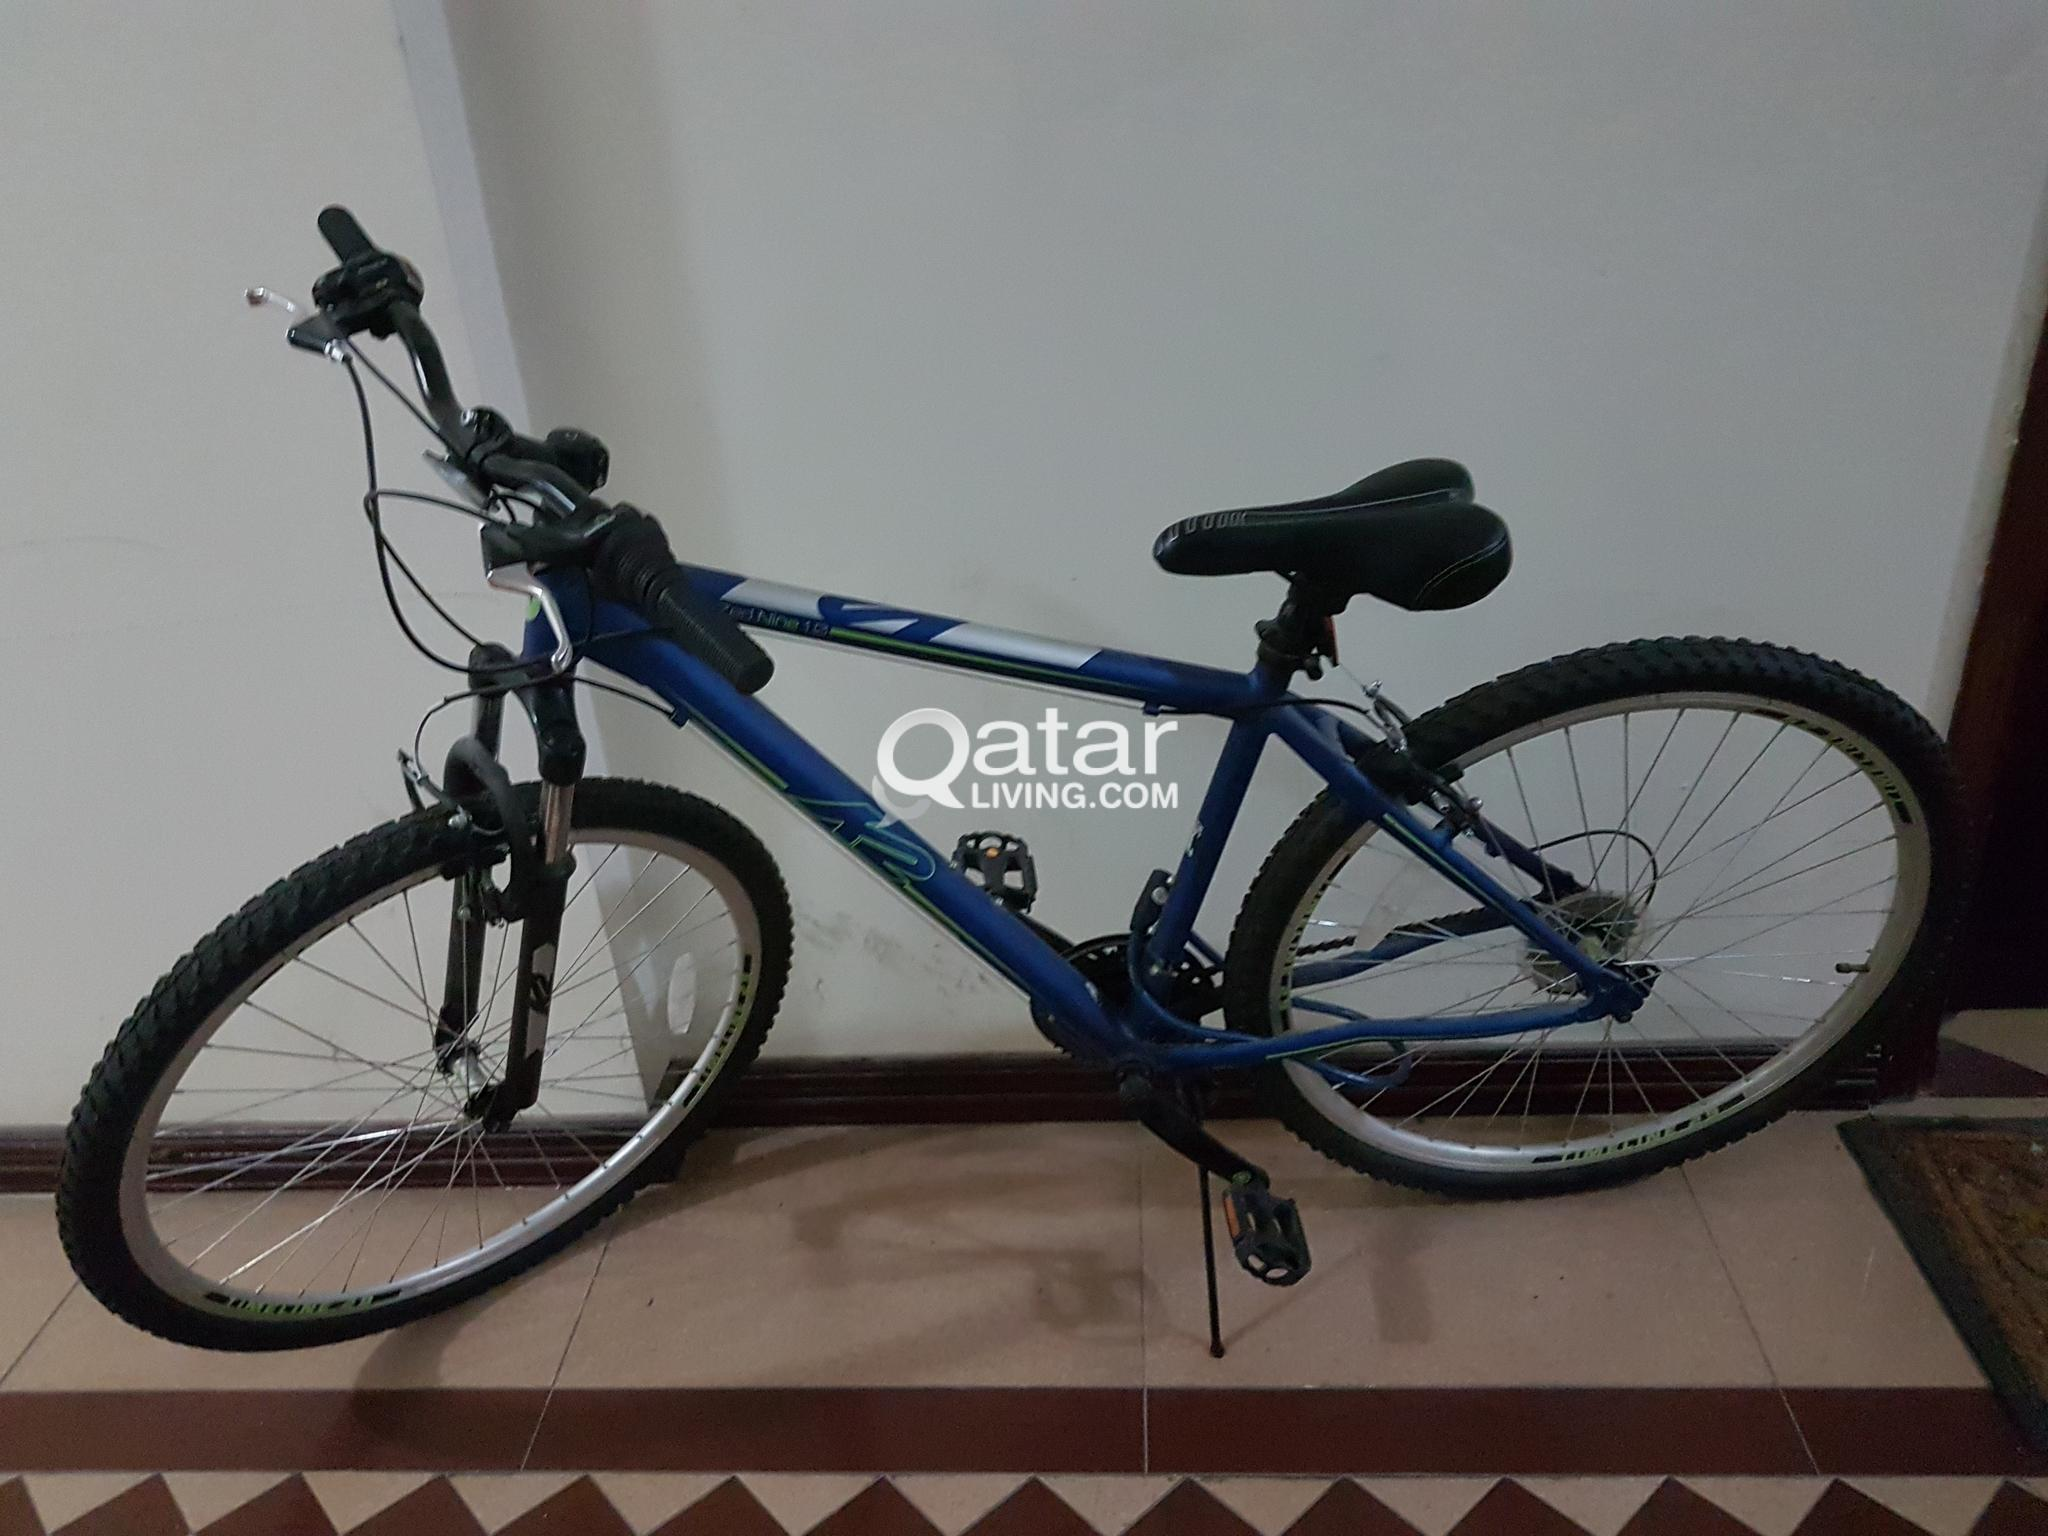 K2 For Sale >> K2 Bicycle For Sale Qatar Living